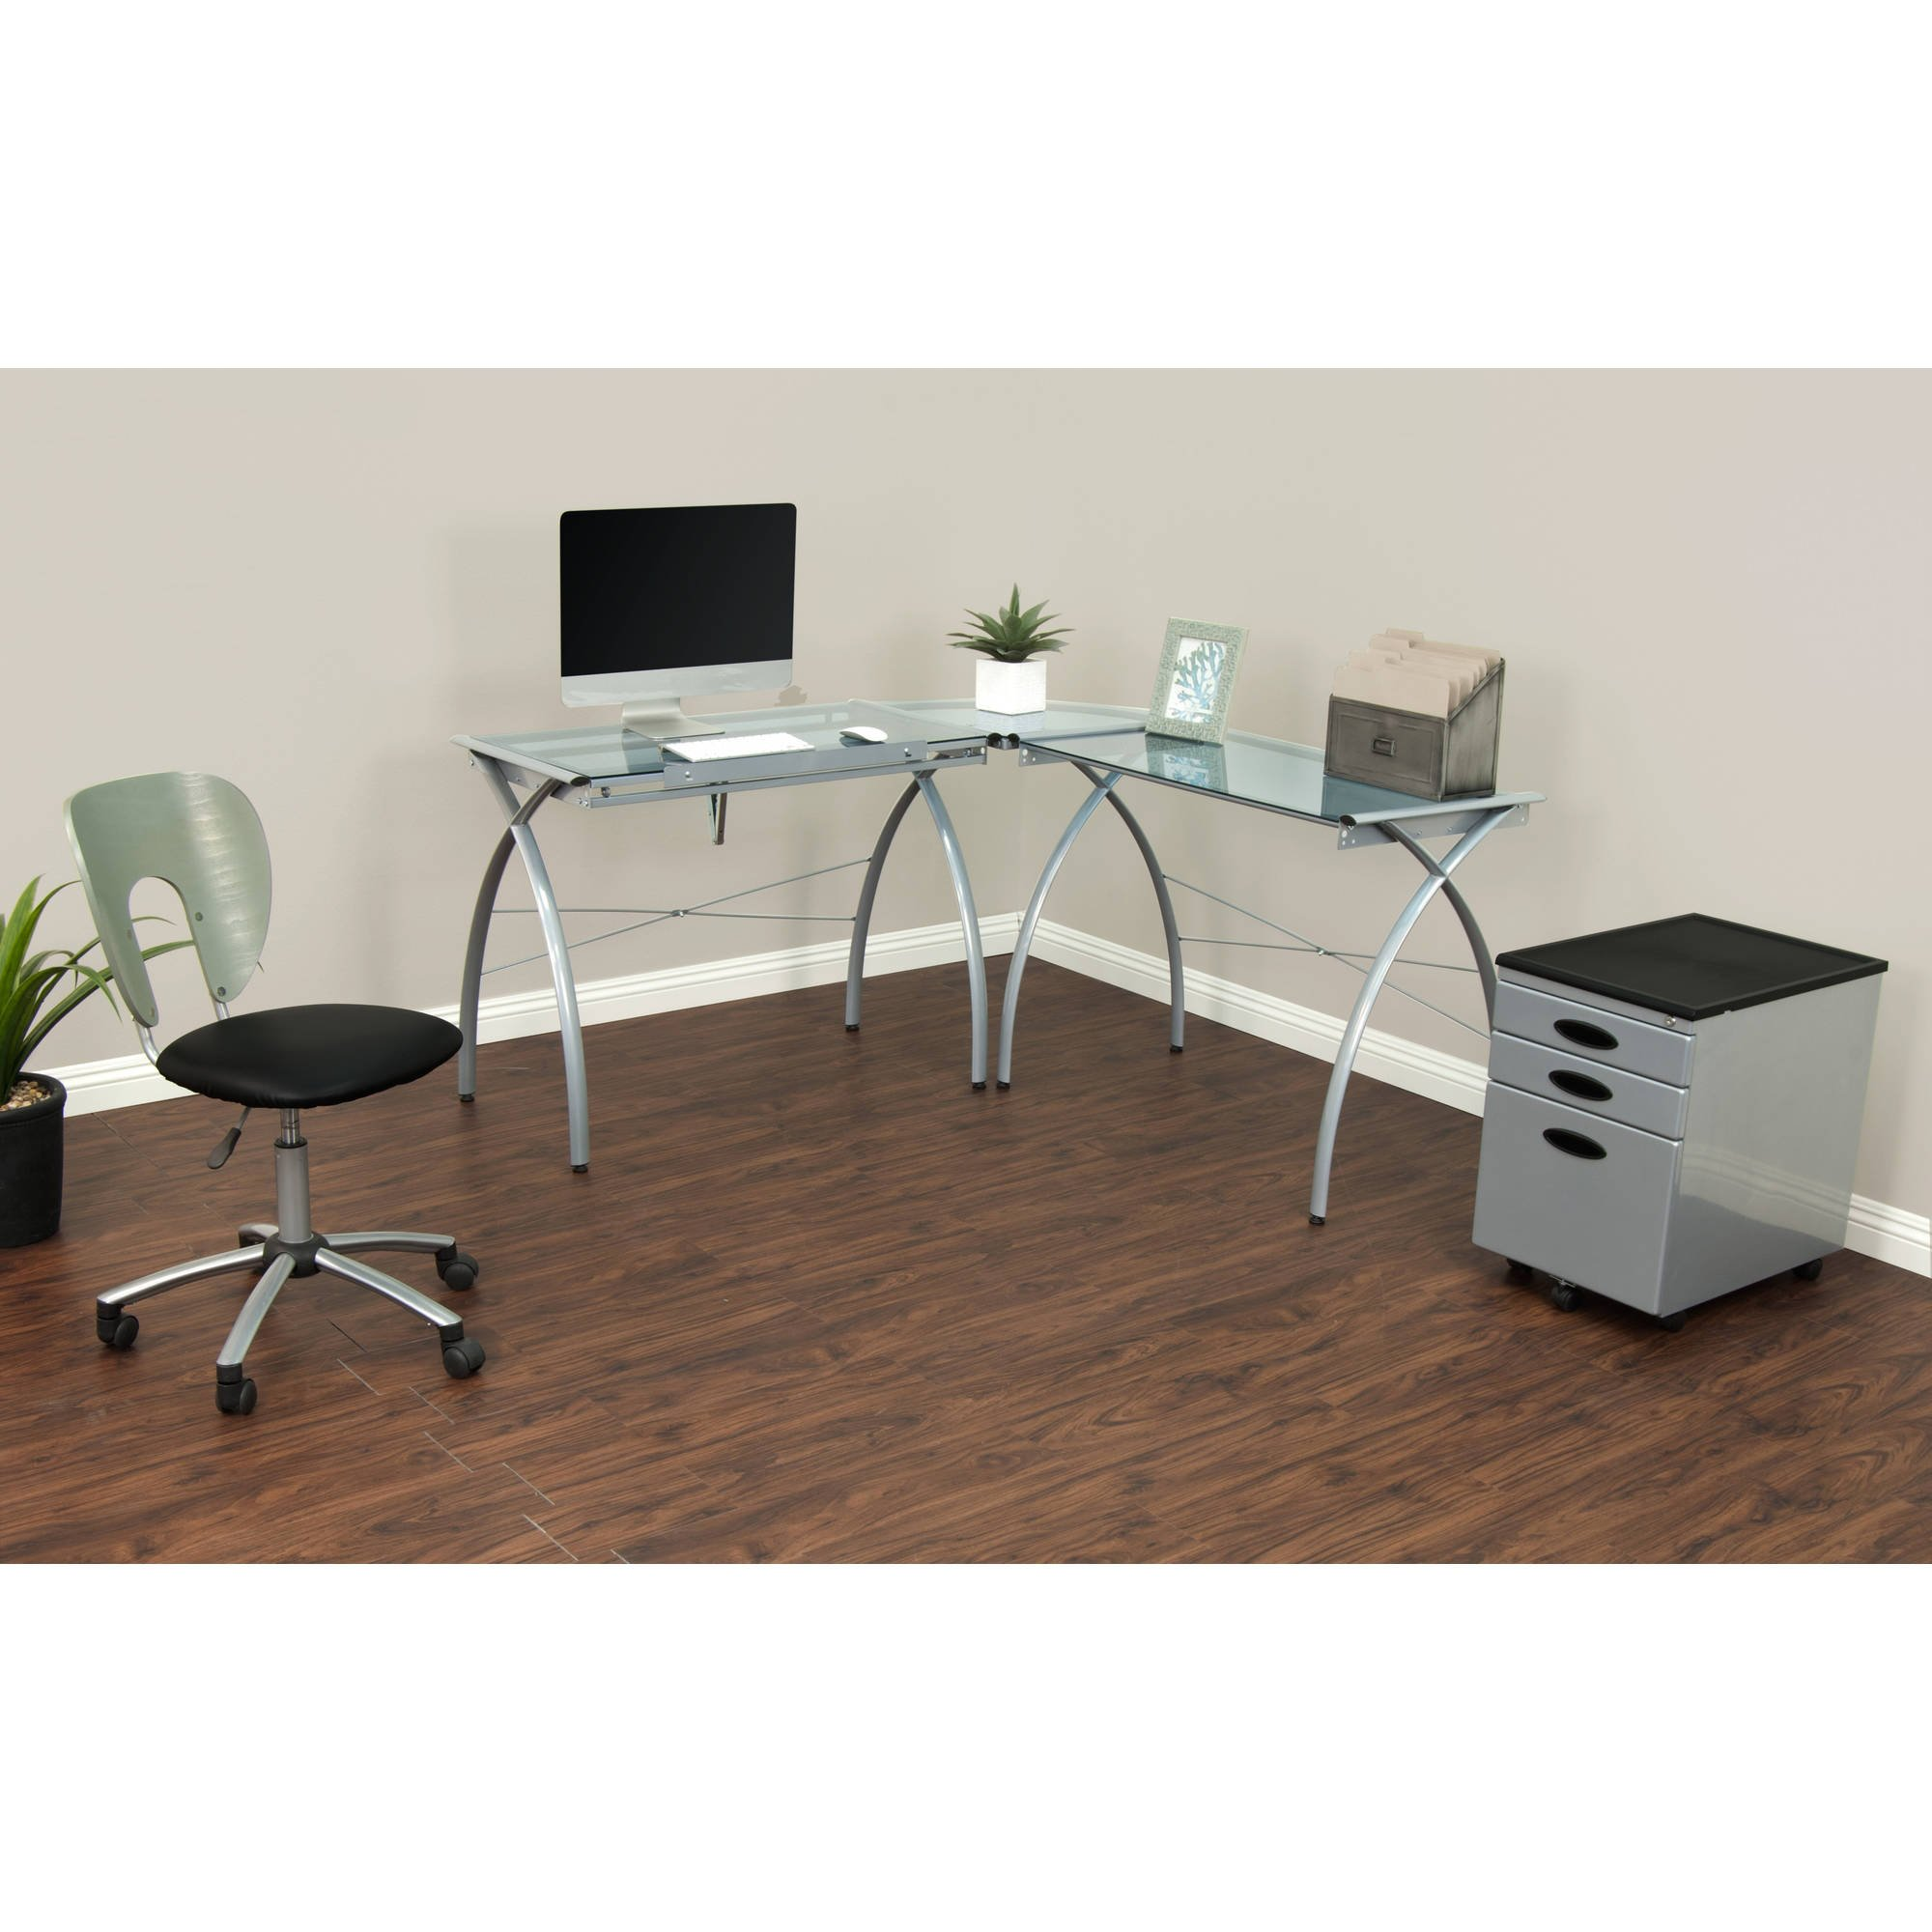 Corner Desk Drafting Table, L Shaped, Workstation, Adjustable Split Top, Functional, Suitable for Home Office, Art Student, Work and Craft Furniture + Expert Guide by Care 4 Home LLC (Image #5)